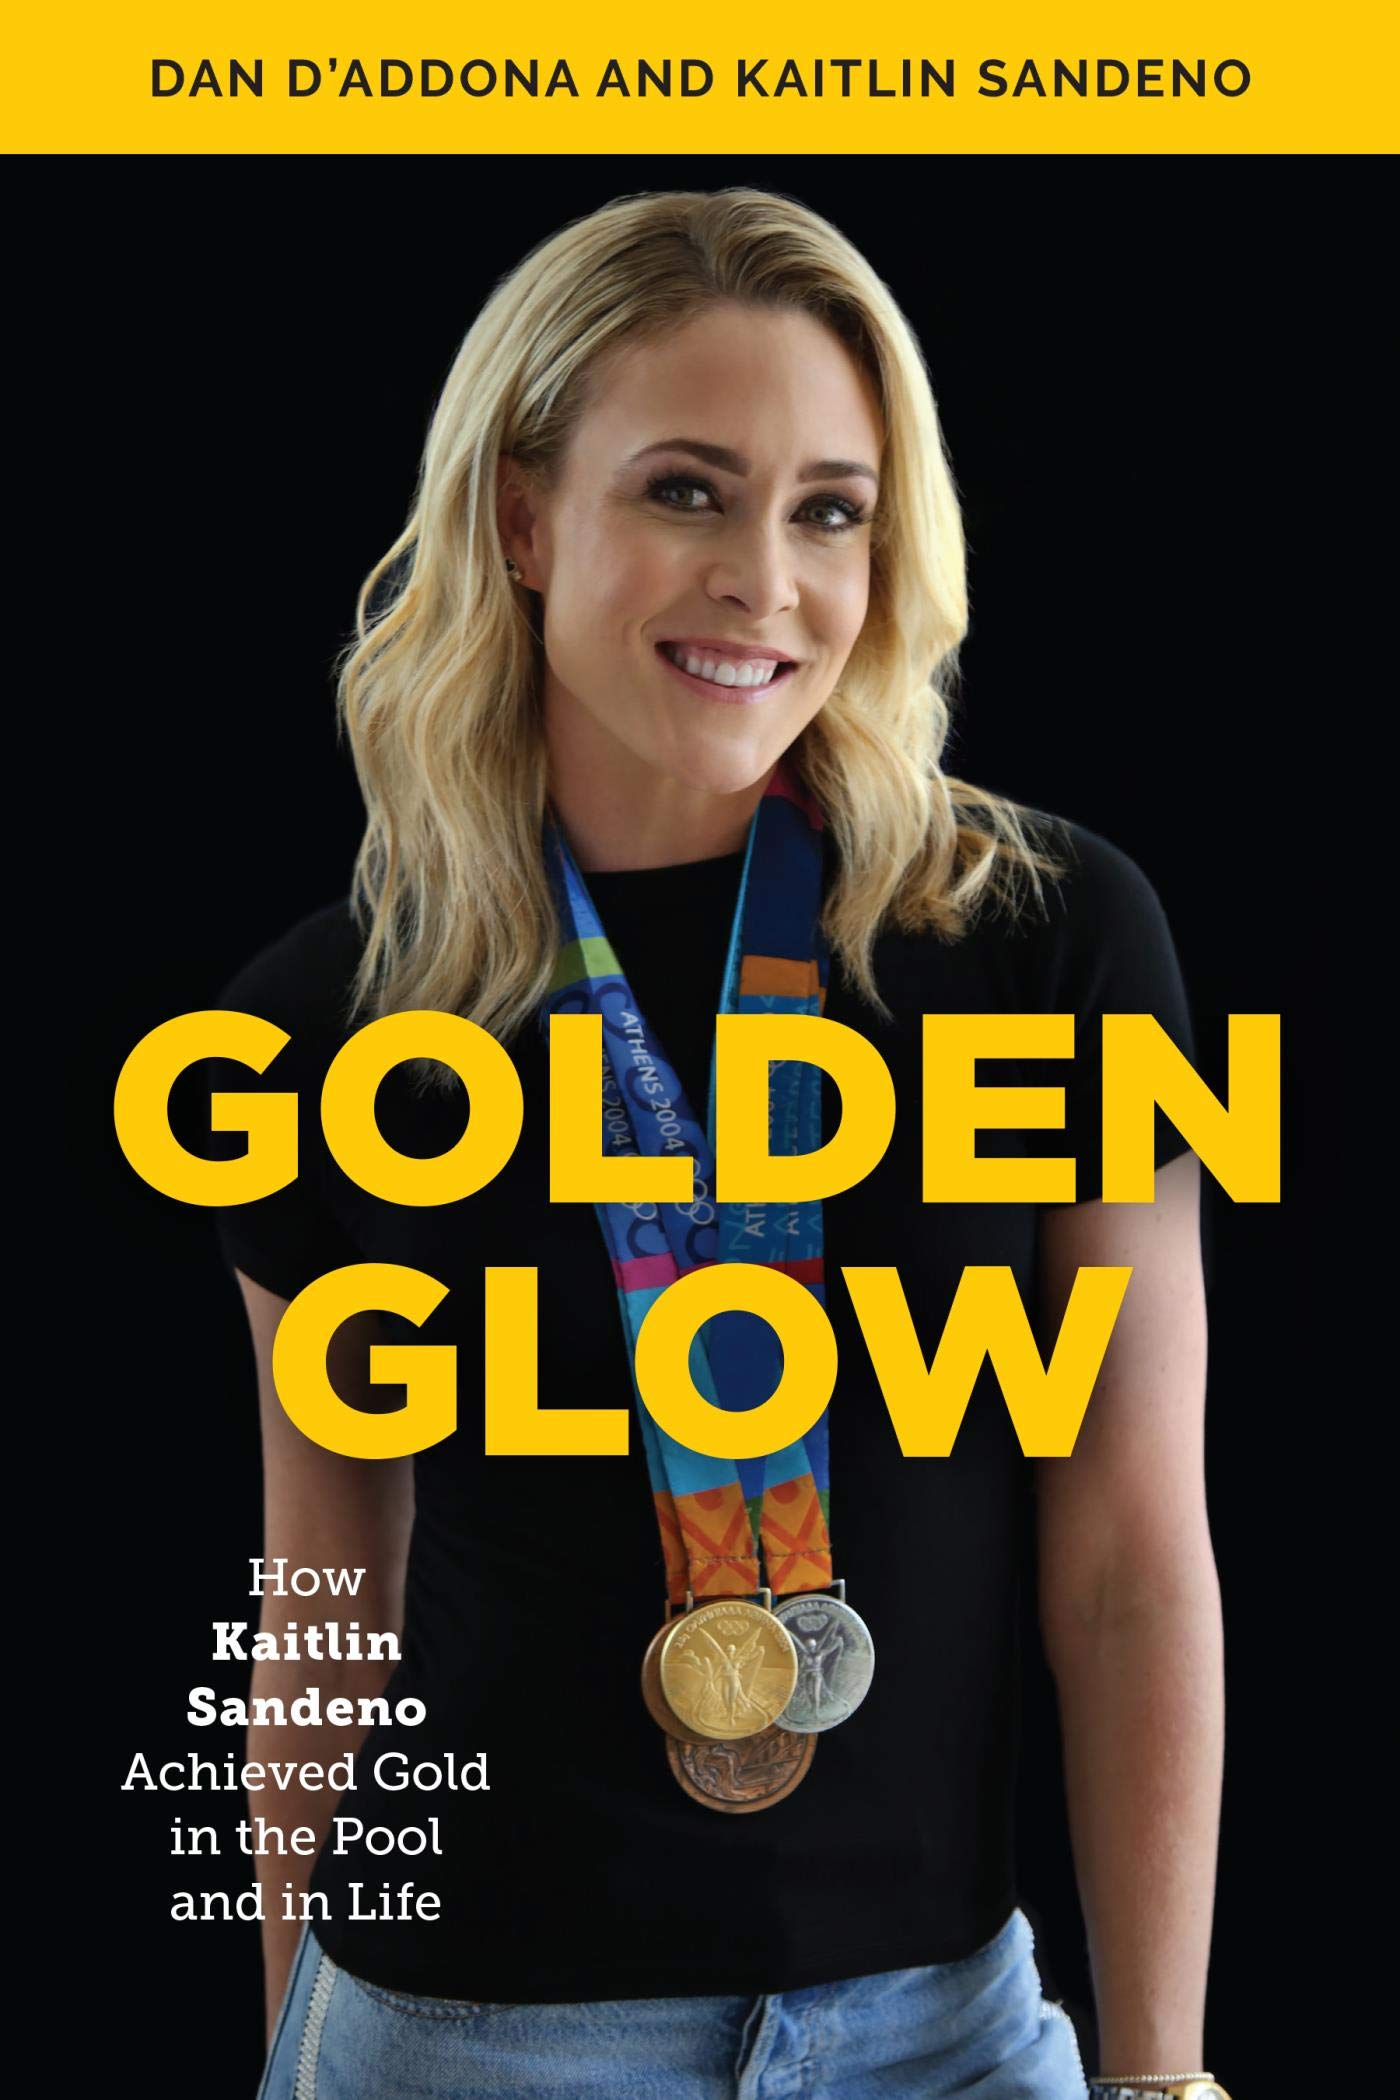 Download Golden Glow: How Kaitlin Sandeno Achieved Gold in the Pool and in Life (English Edition)